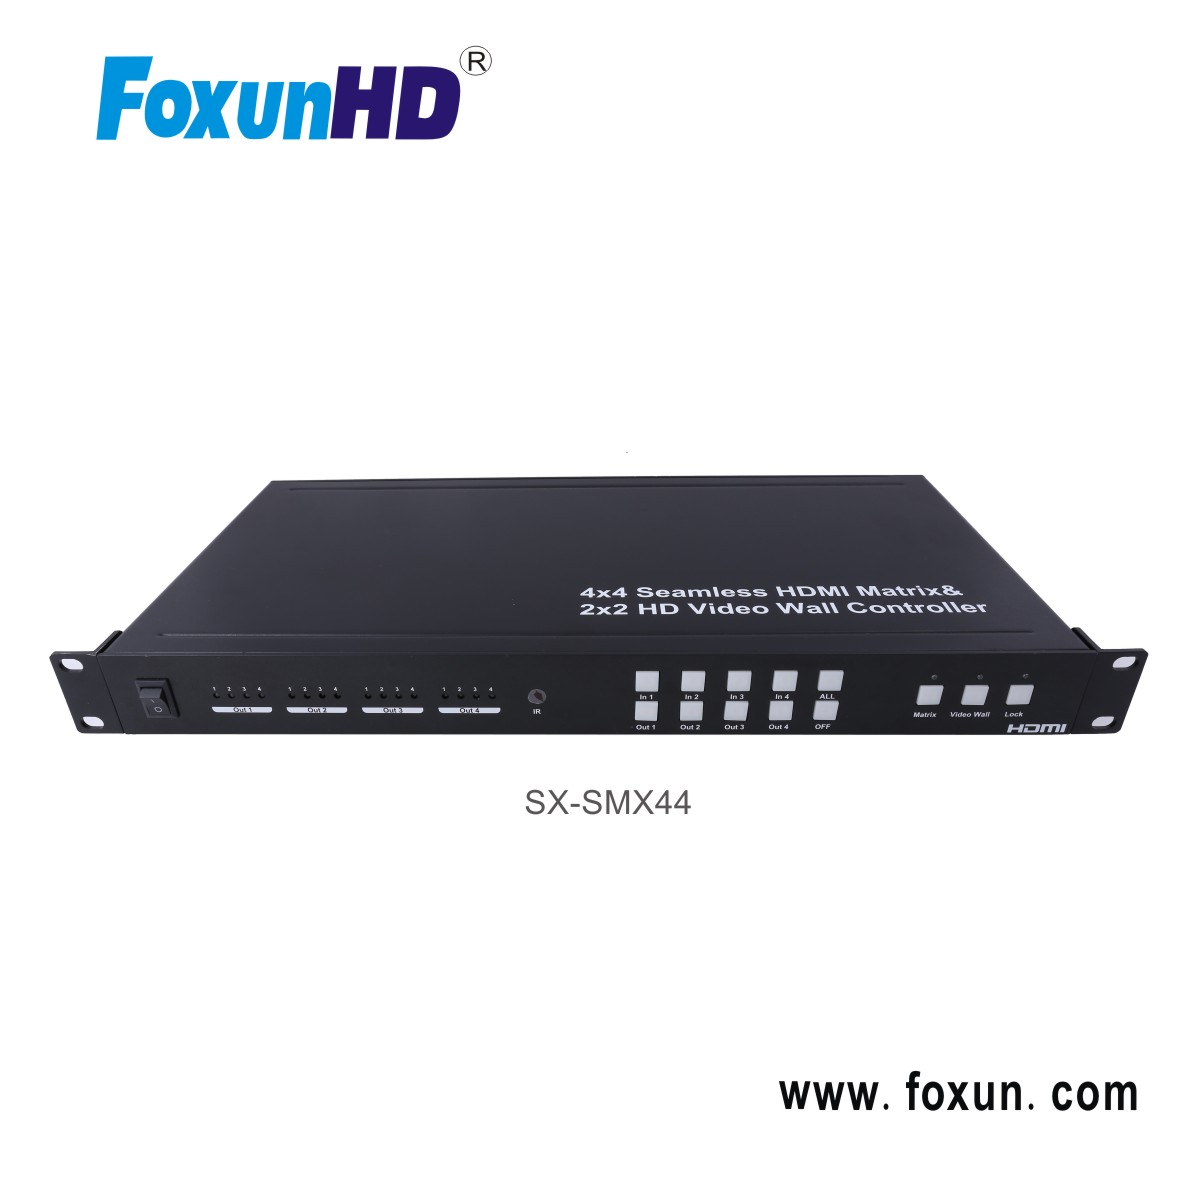 Good Quality HDMI 1080P@60HZ Matrix Switch Support 2X2 Video Wall